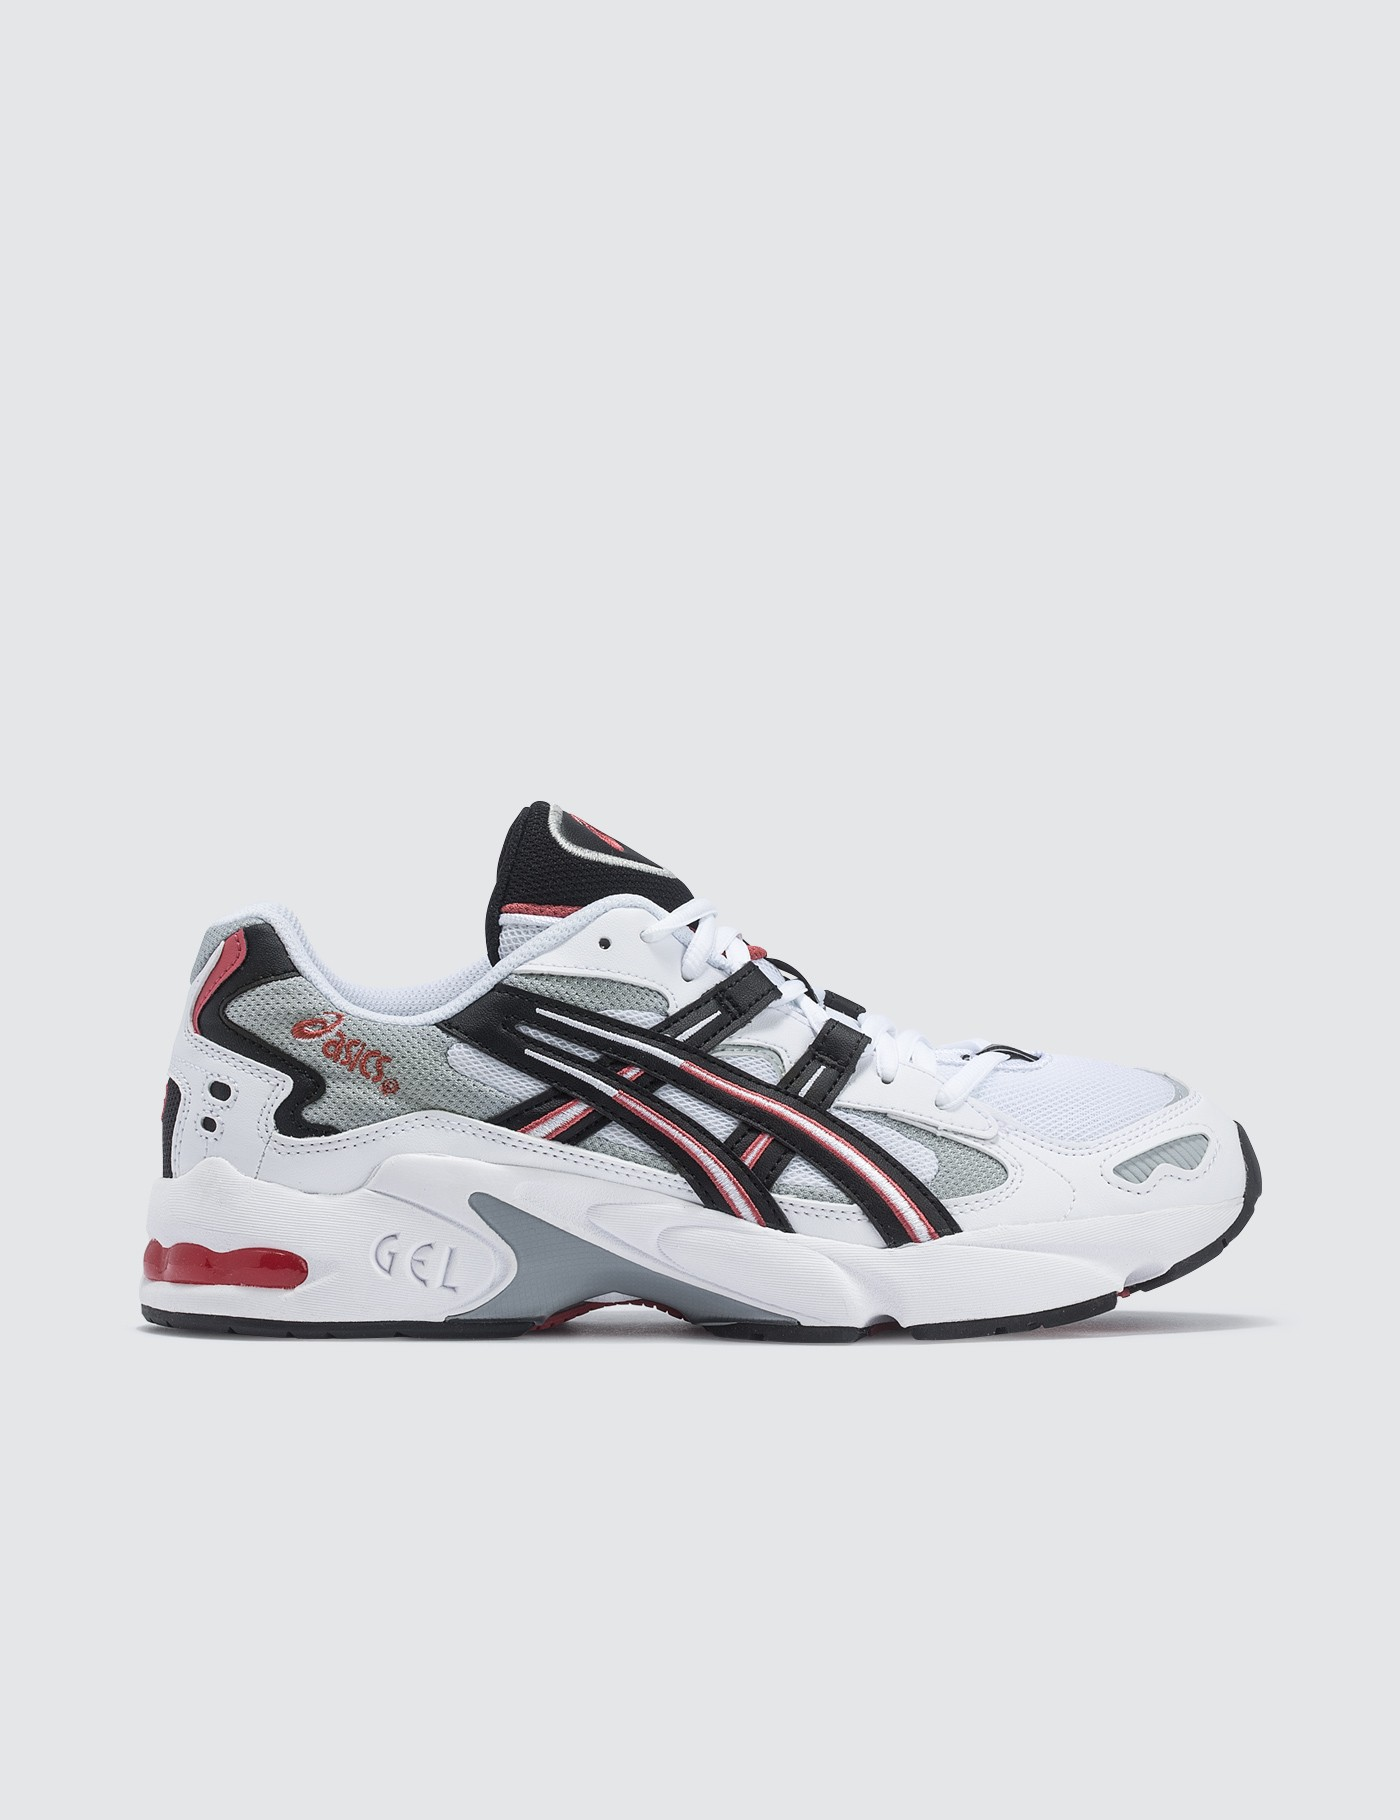 meilleures baskets ba65b b9be4 Gel-Kayano 5 OG Sneaker, ASICS